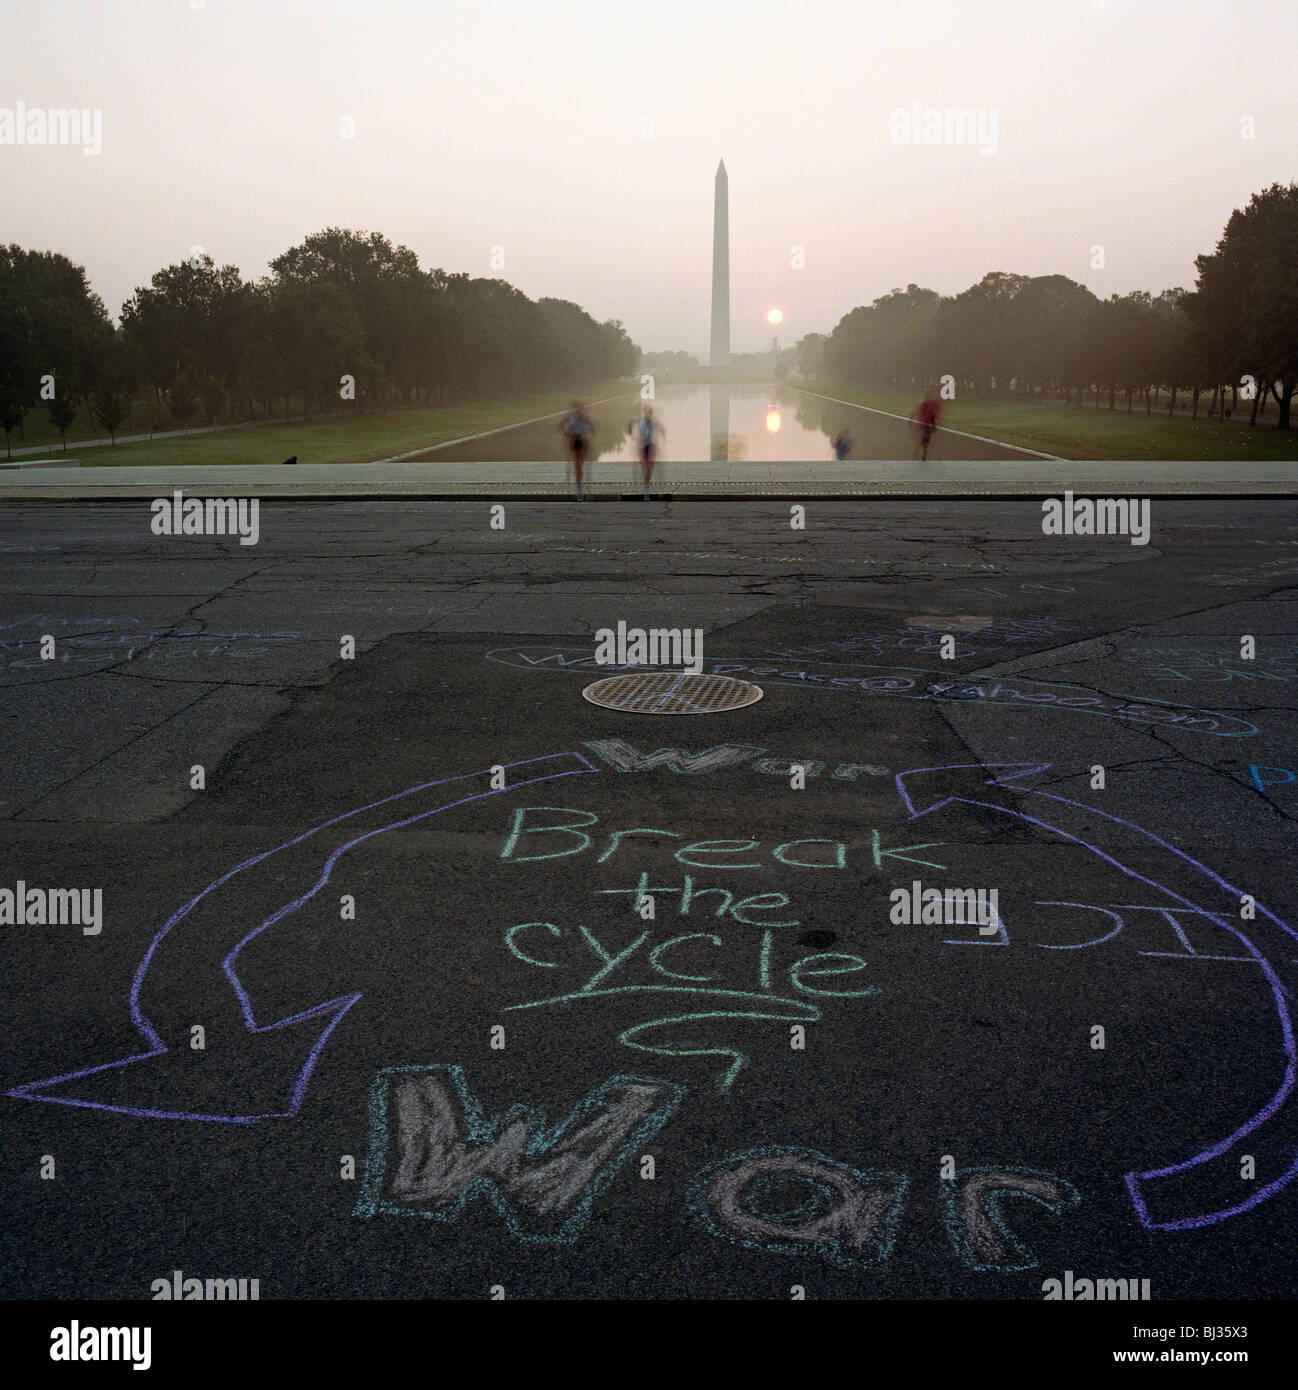 Anti-war graffiti written in a circular chalk graphic on the path in front of the Lincoln Memorial, Washington DC. Stock Photo